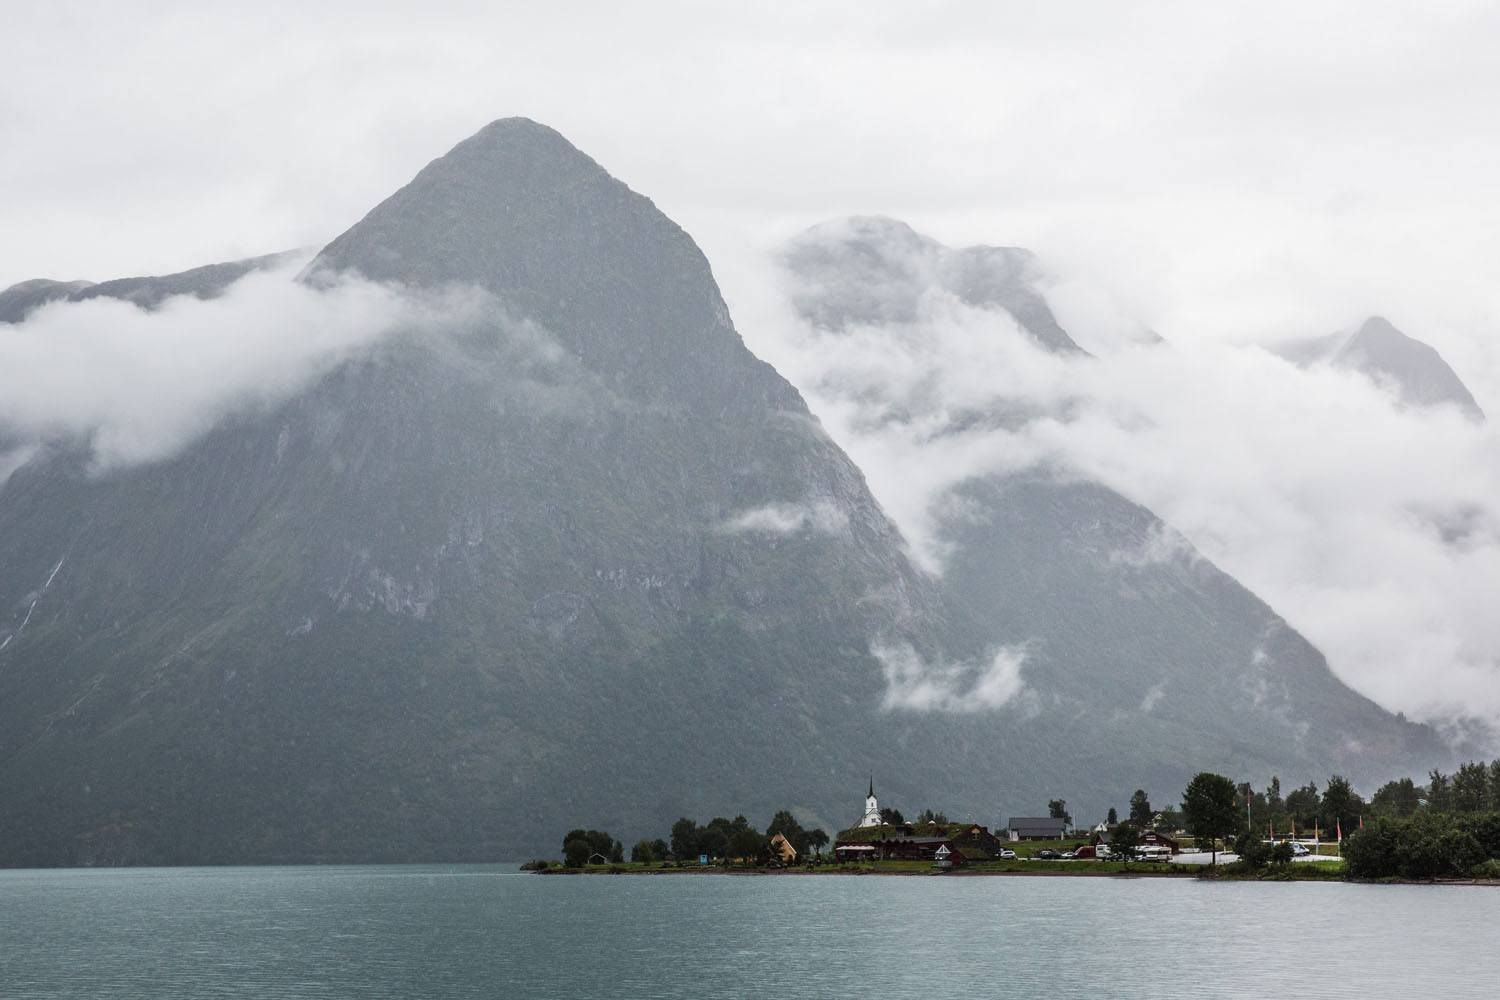 Norwegian Fjords on a Rainy Day